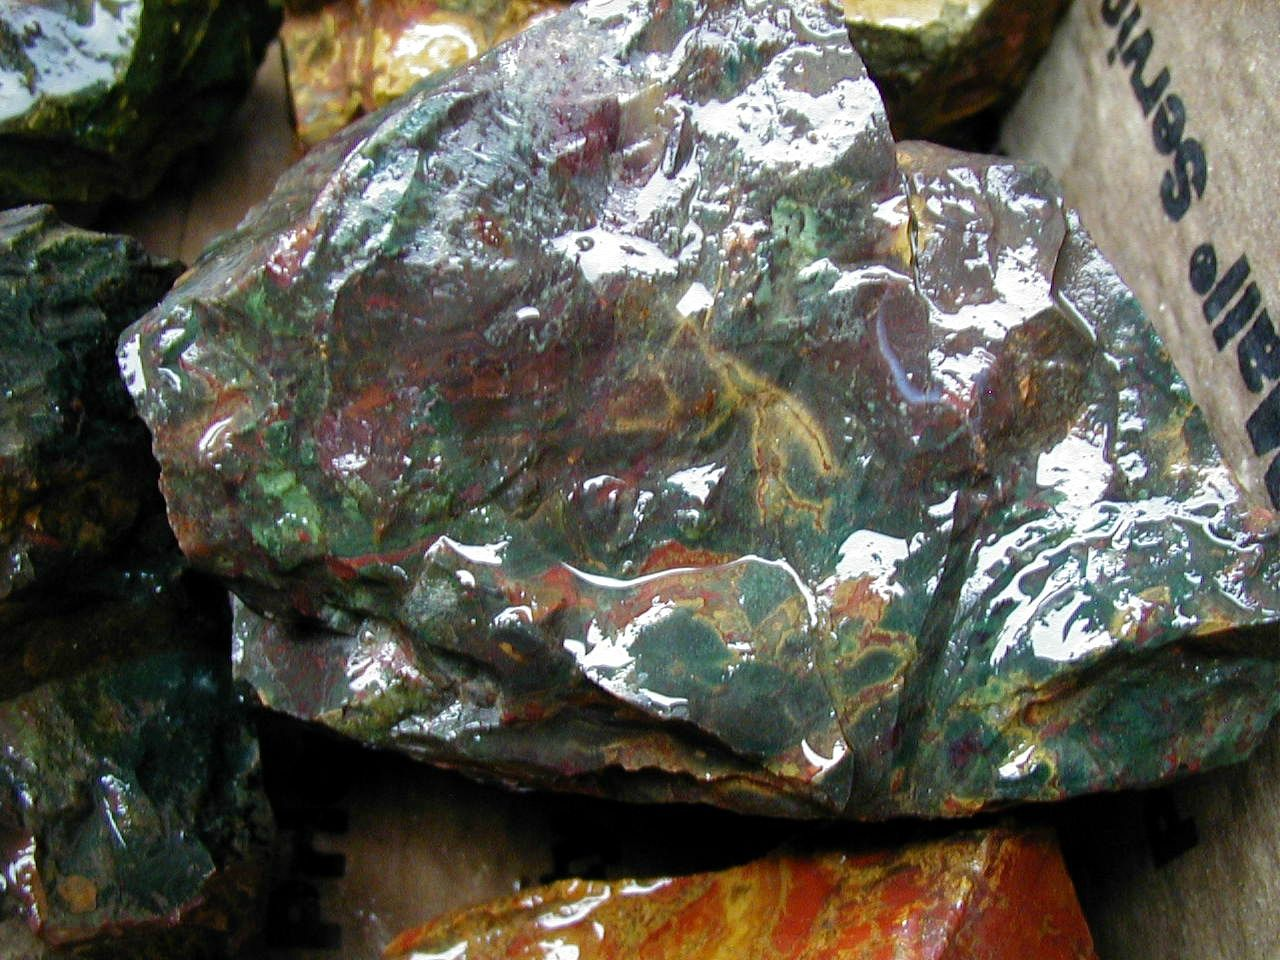 Kaleidoscope Jasper Agate From Oregon High Desert With